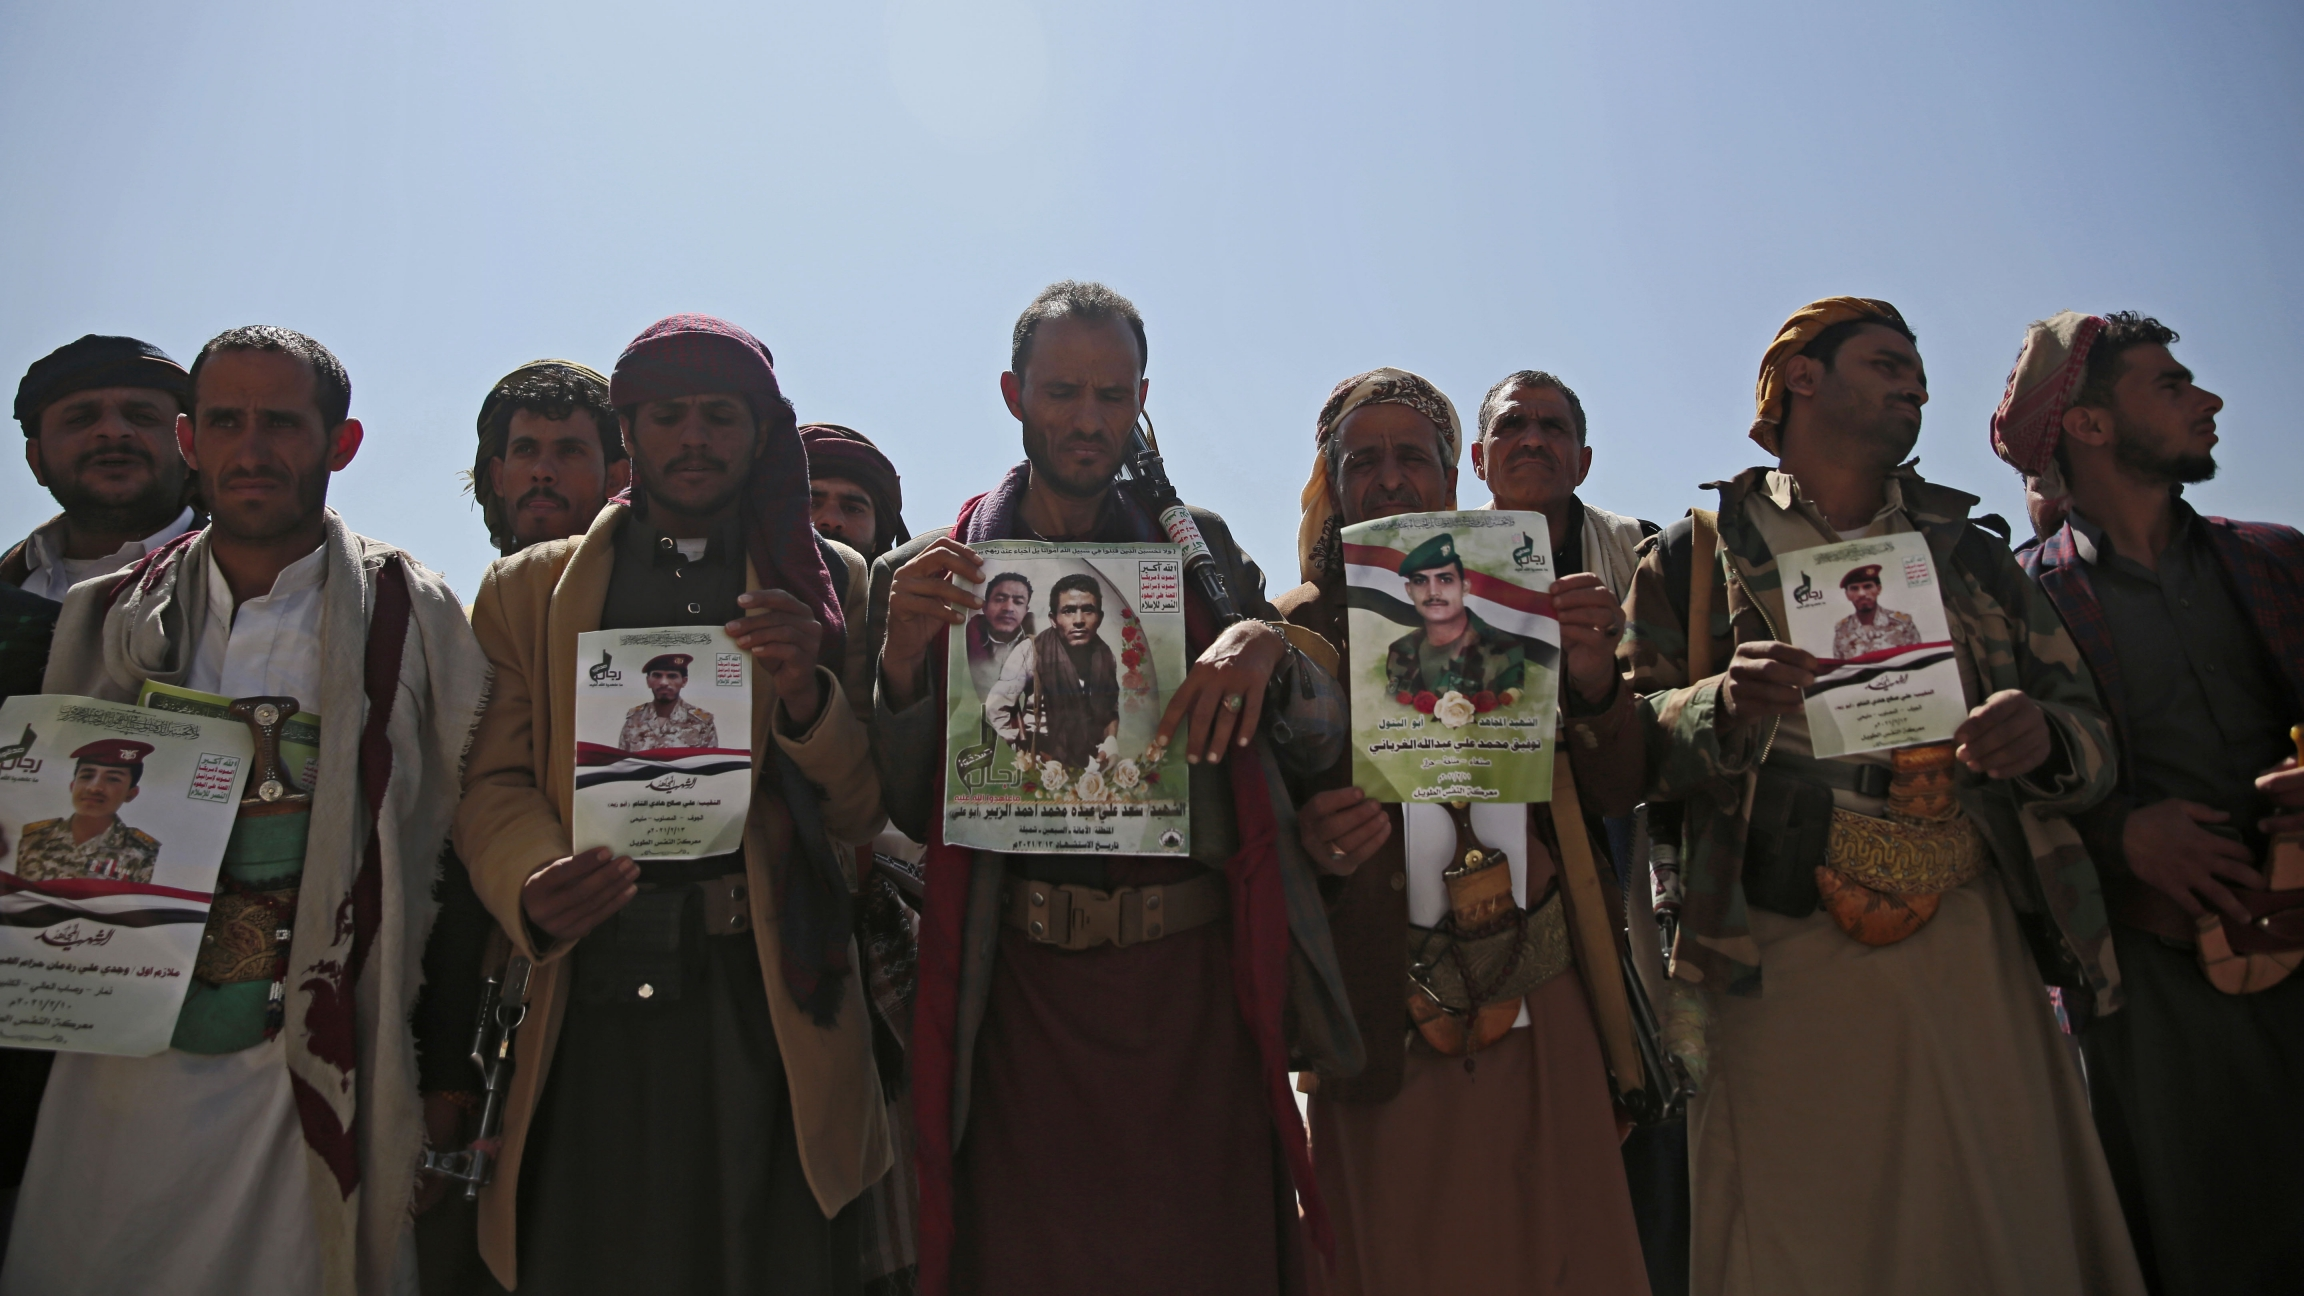 Houthi fighters hold images of relatives killed in violent conflict